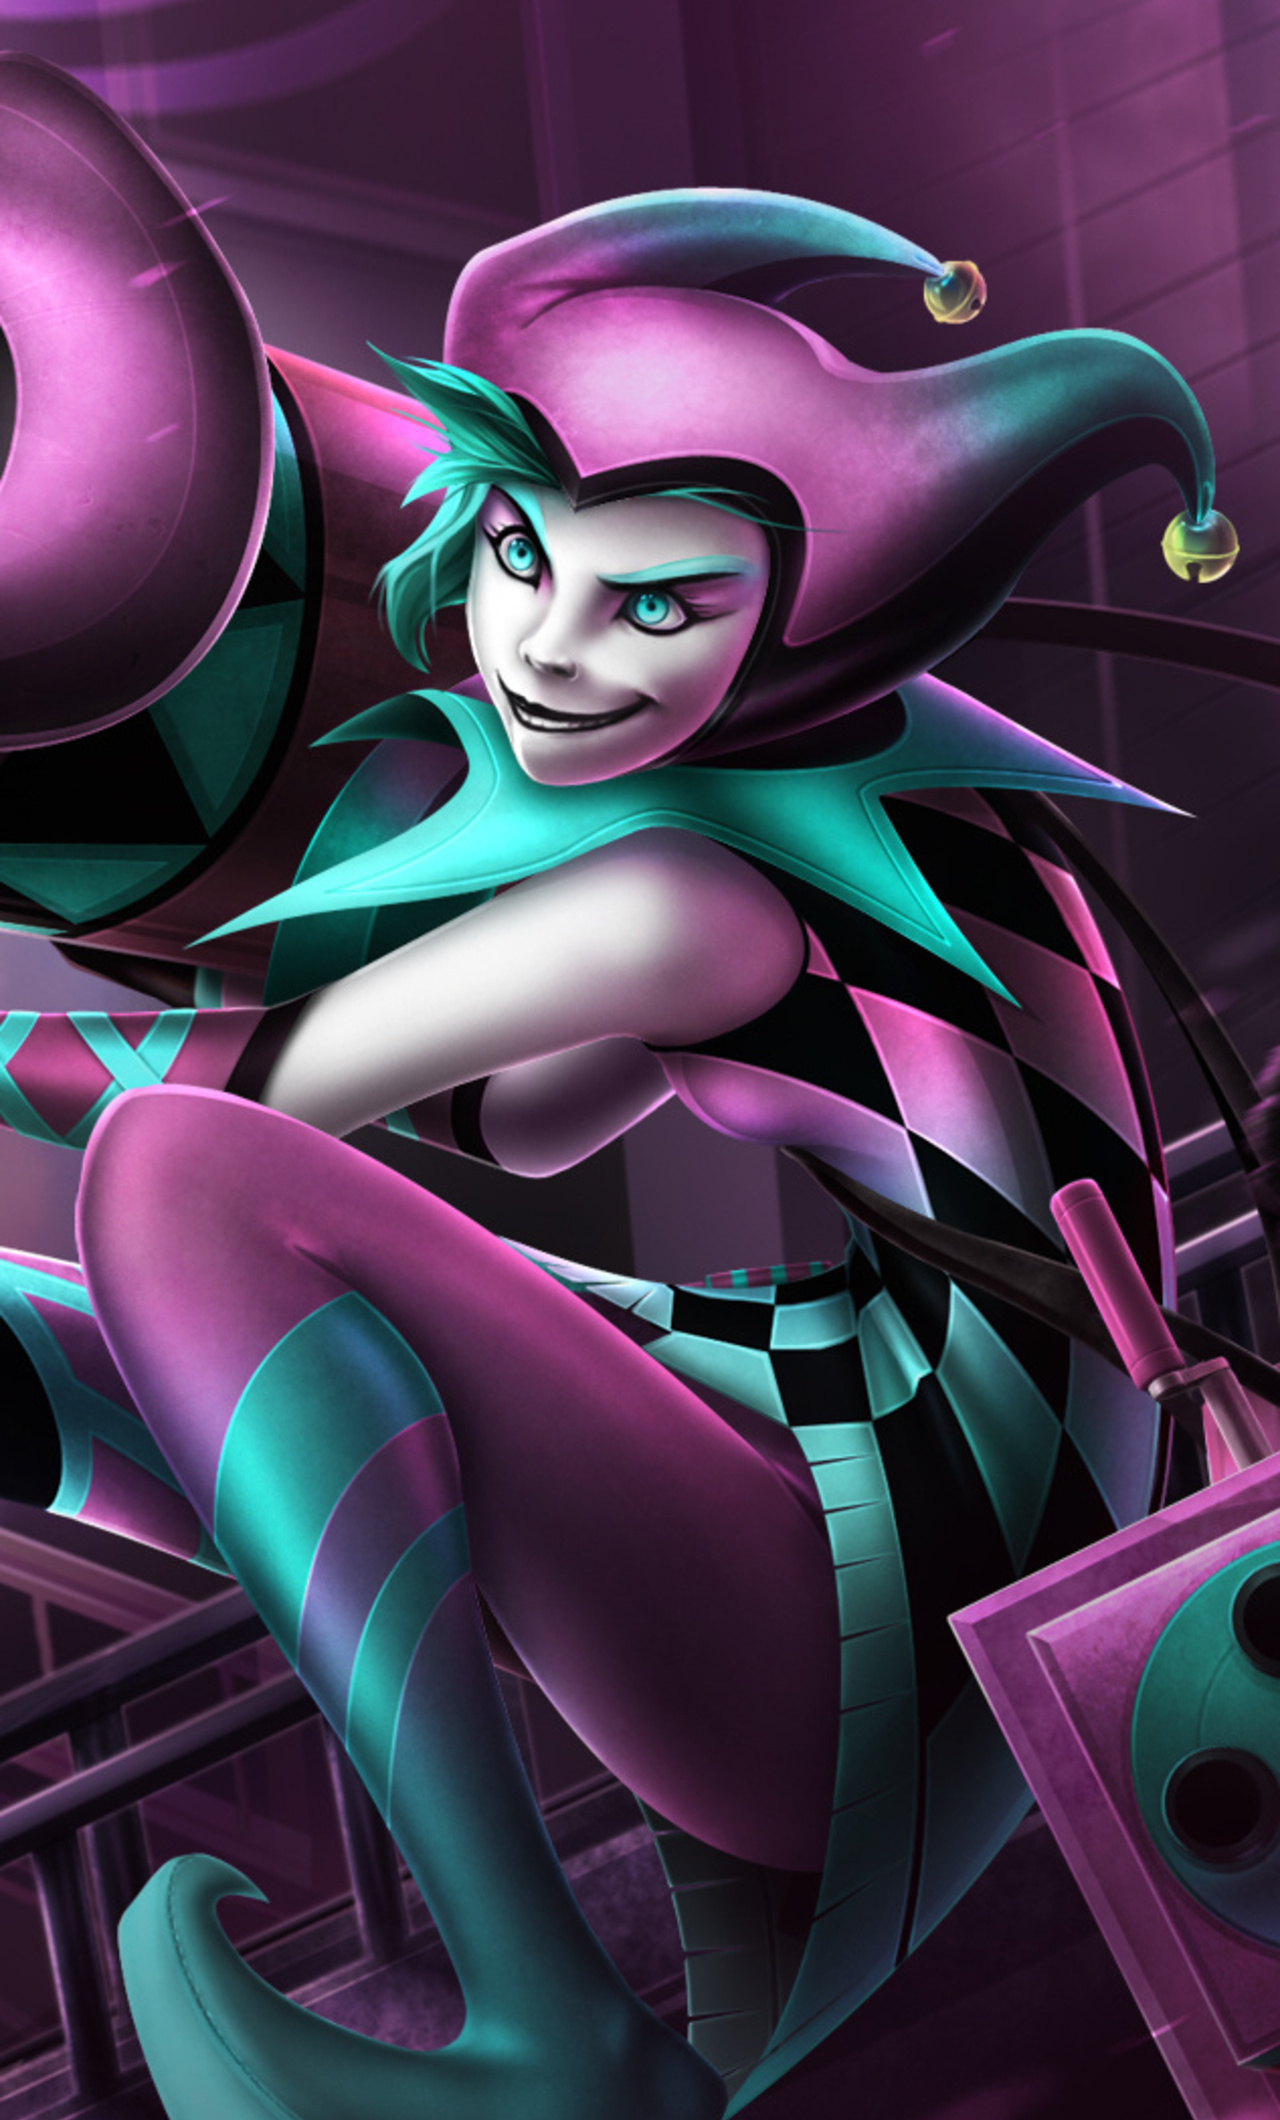 jinx wallpaper iphone 6 gadget and pc wallpaper